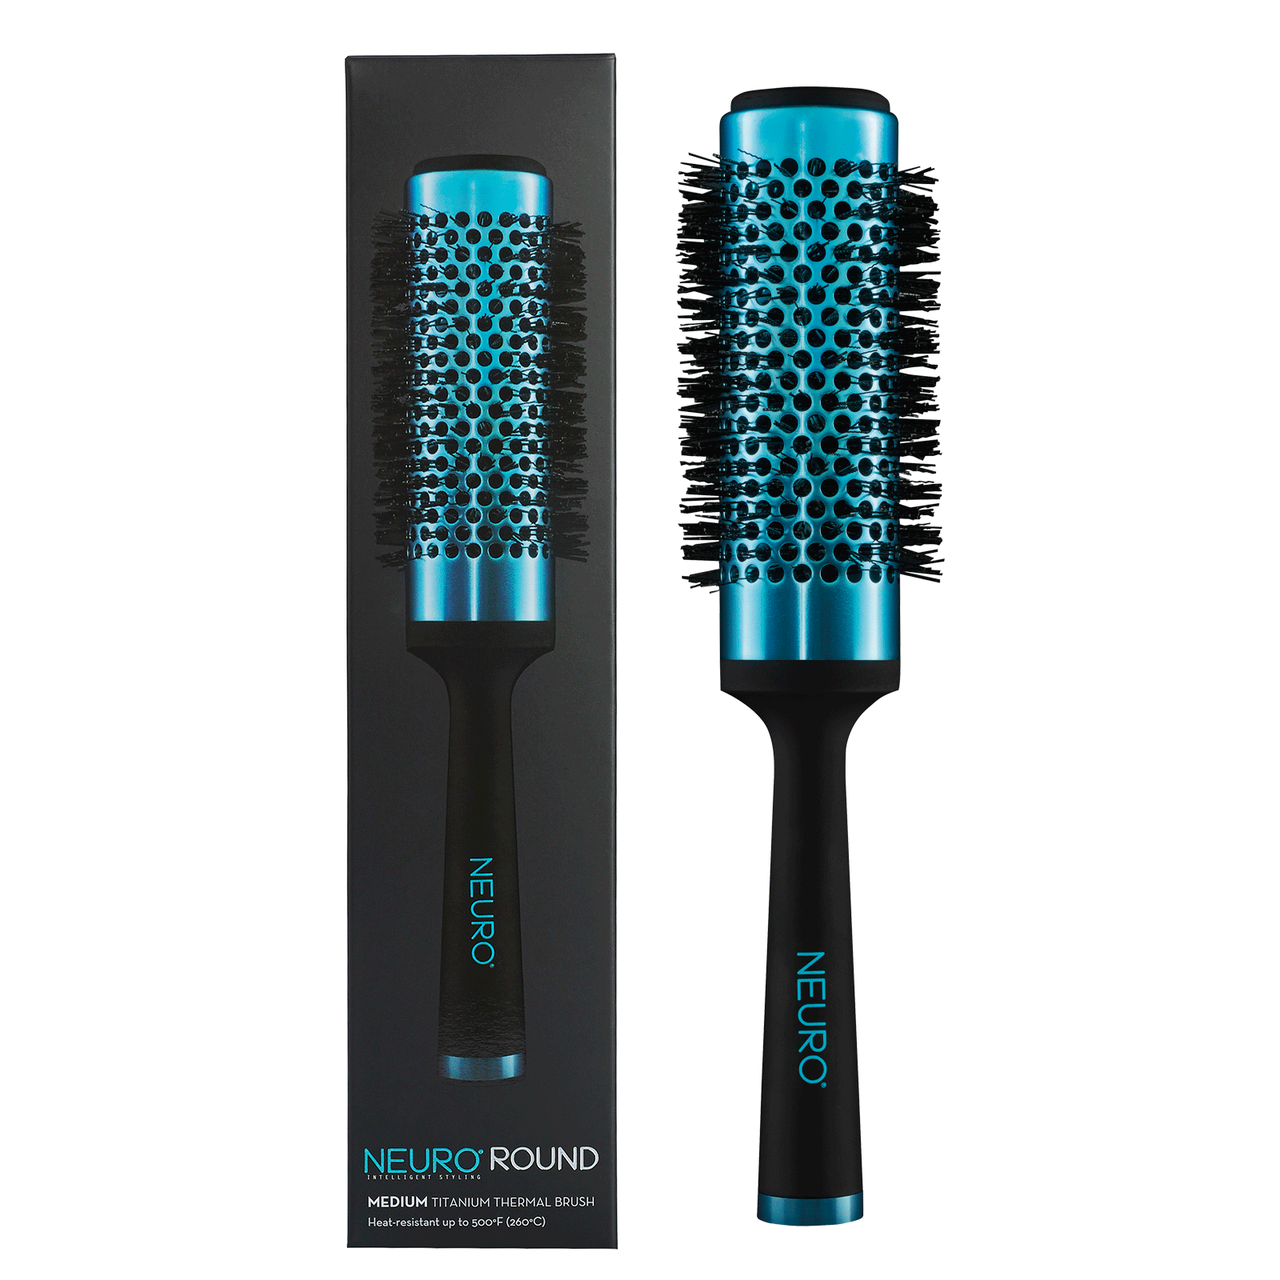 Neuro round titanium thermal brush   medium  53427